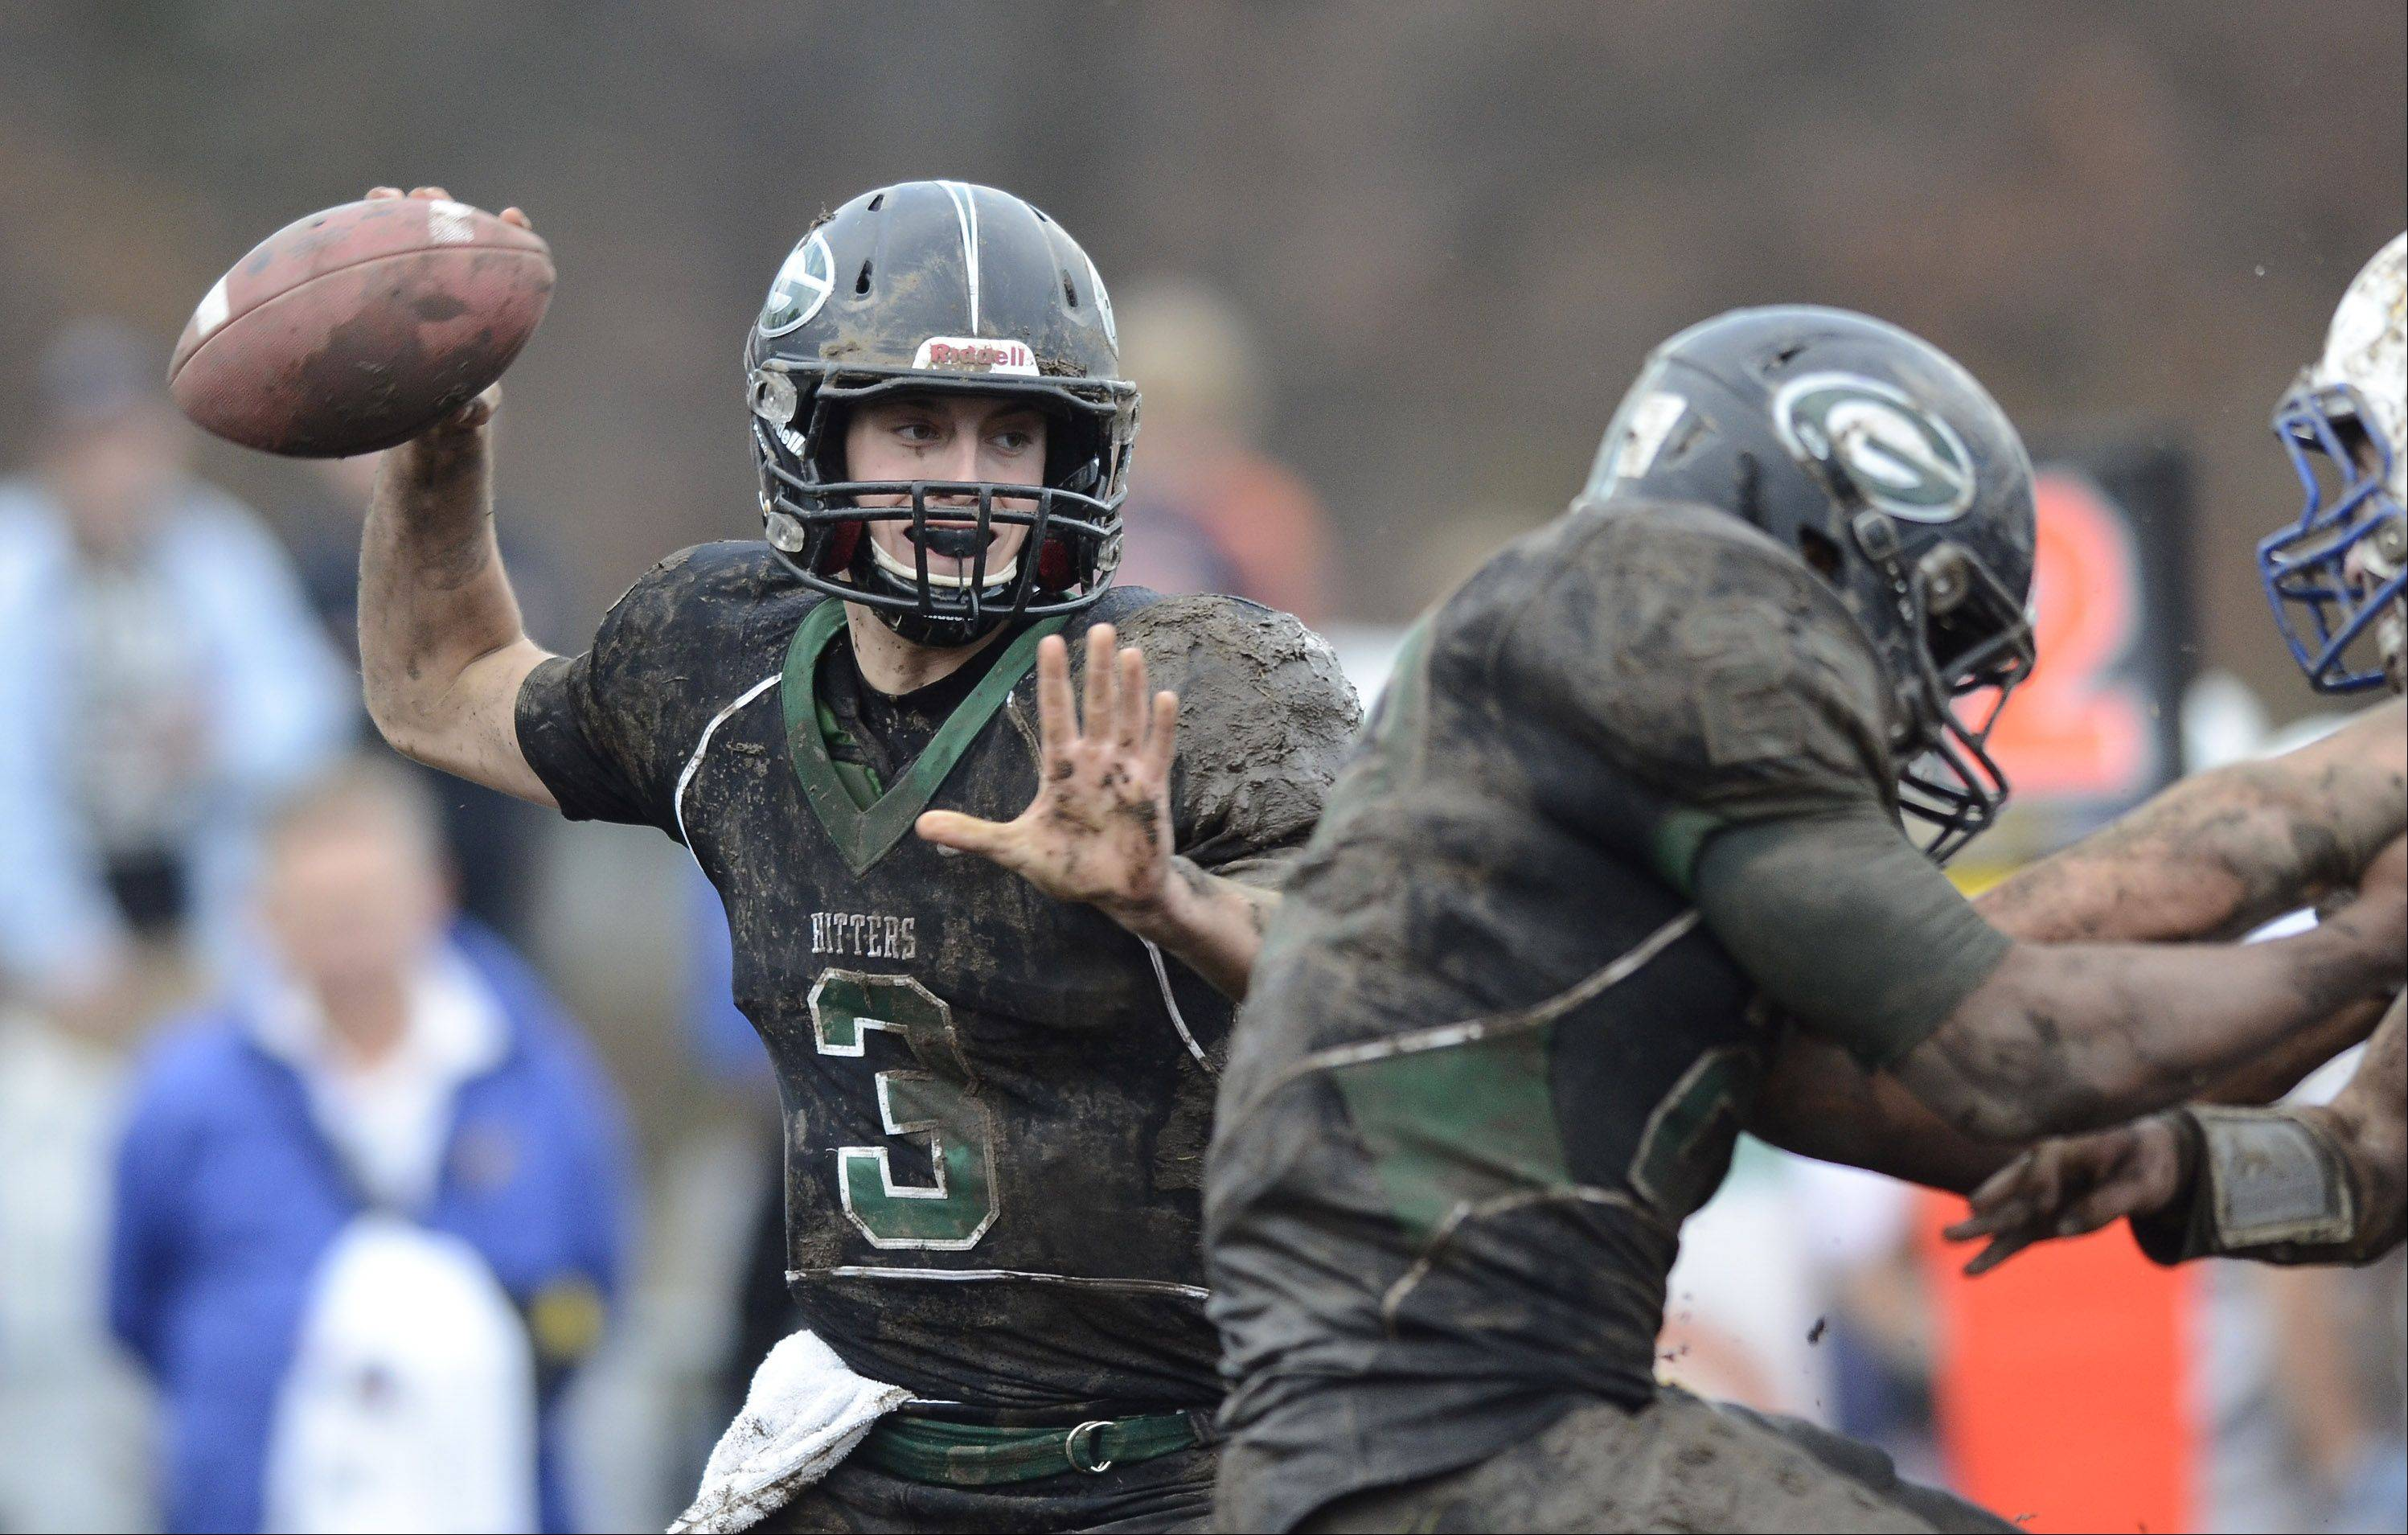 Glenbard West quarterback Henry Haeffner throws a pass during Saturday's game against Wheaton North.